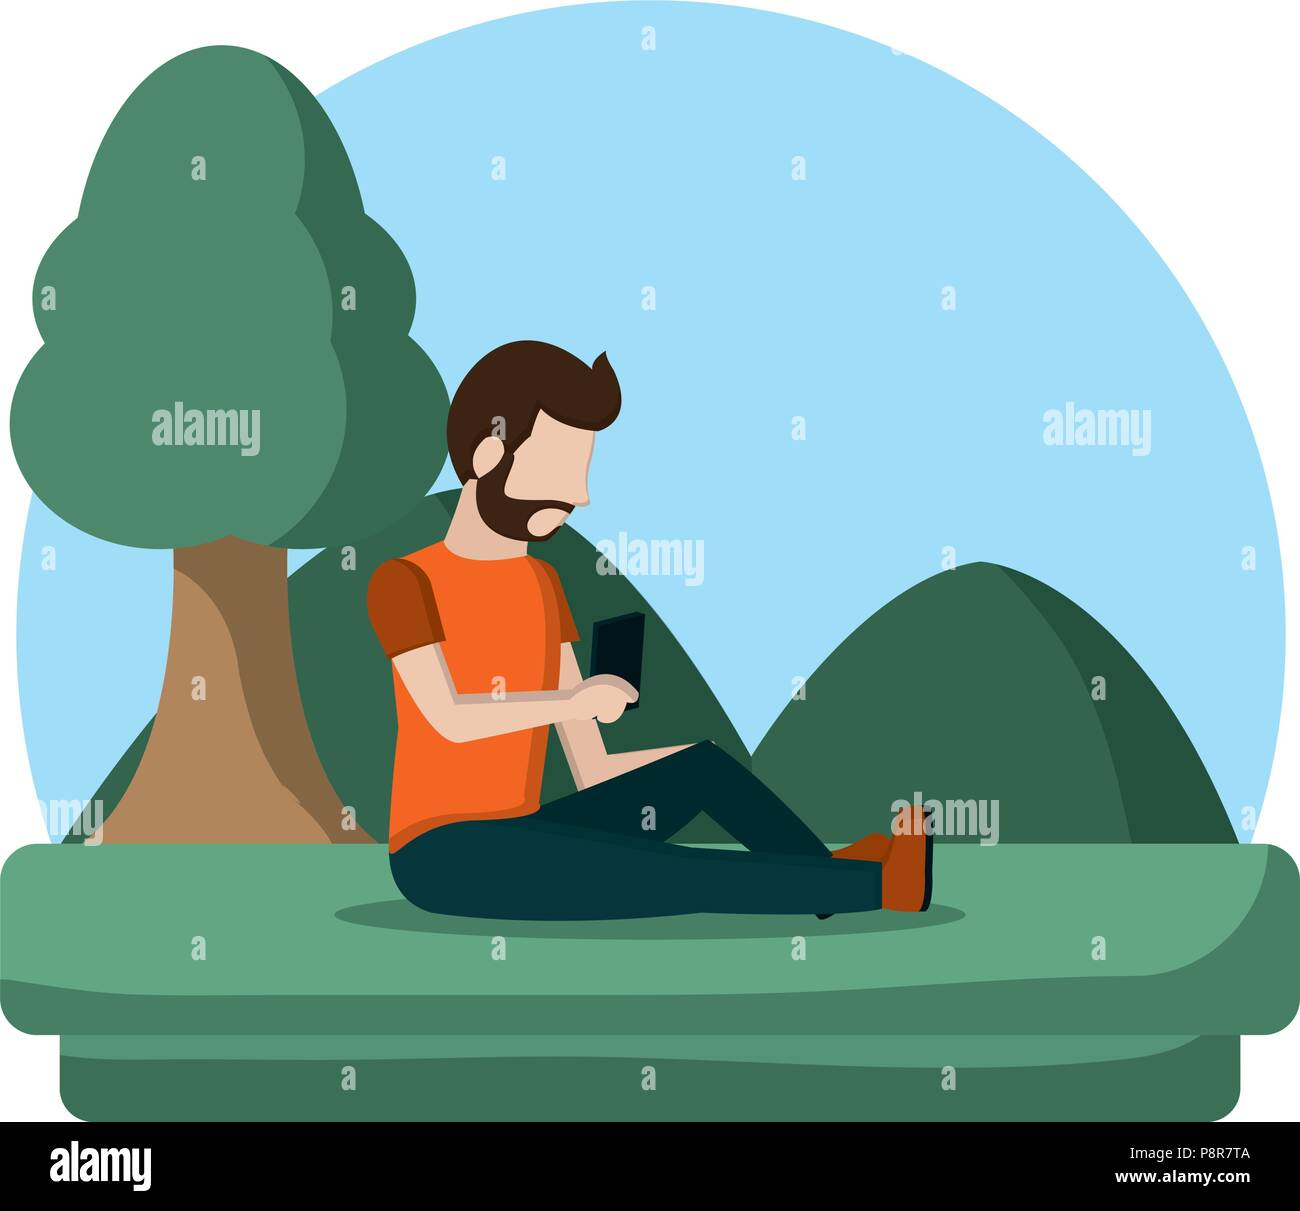 man with social smartphone and quiet landscape vector illustration - Stock Image